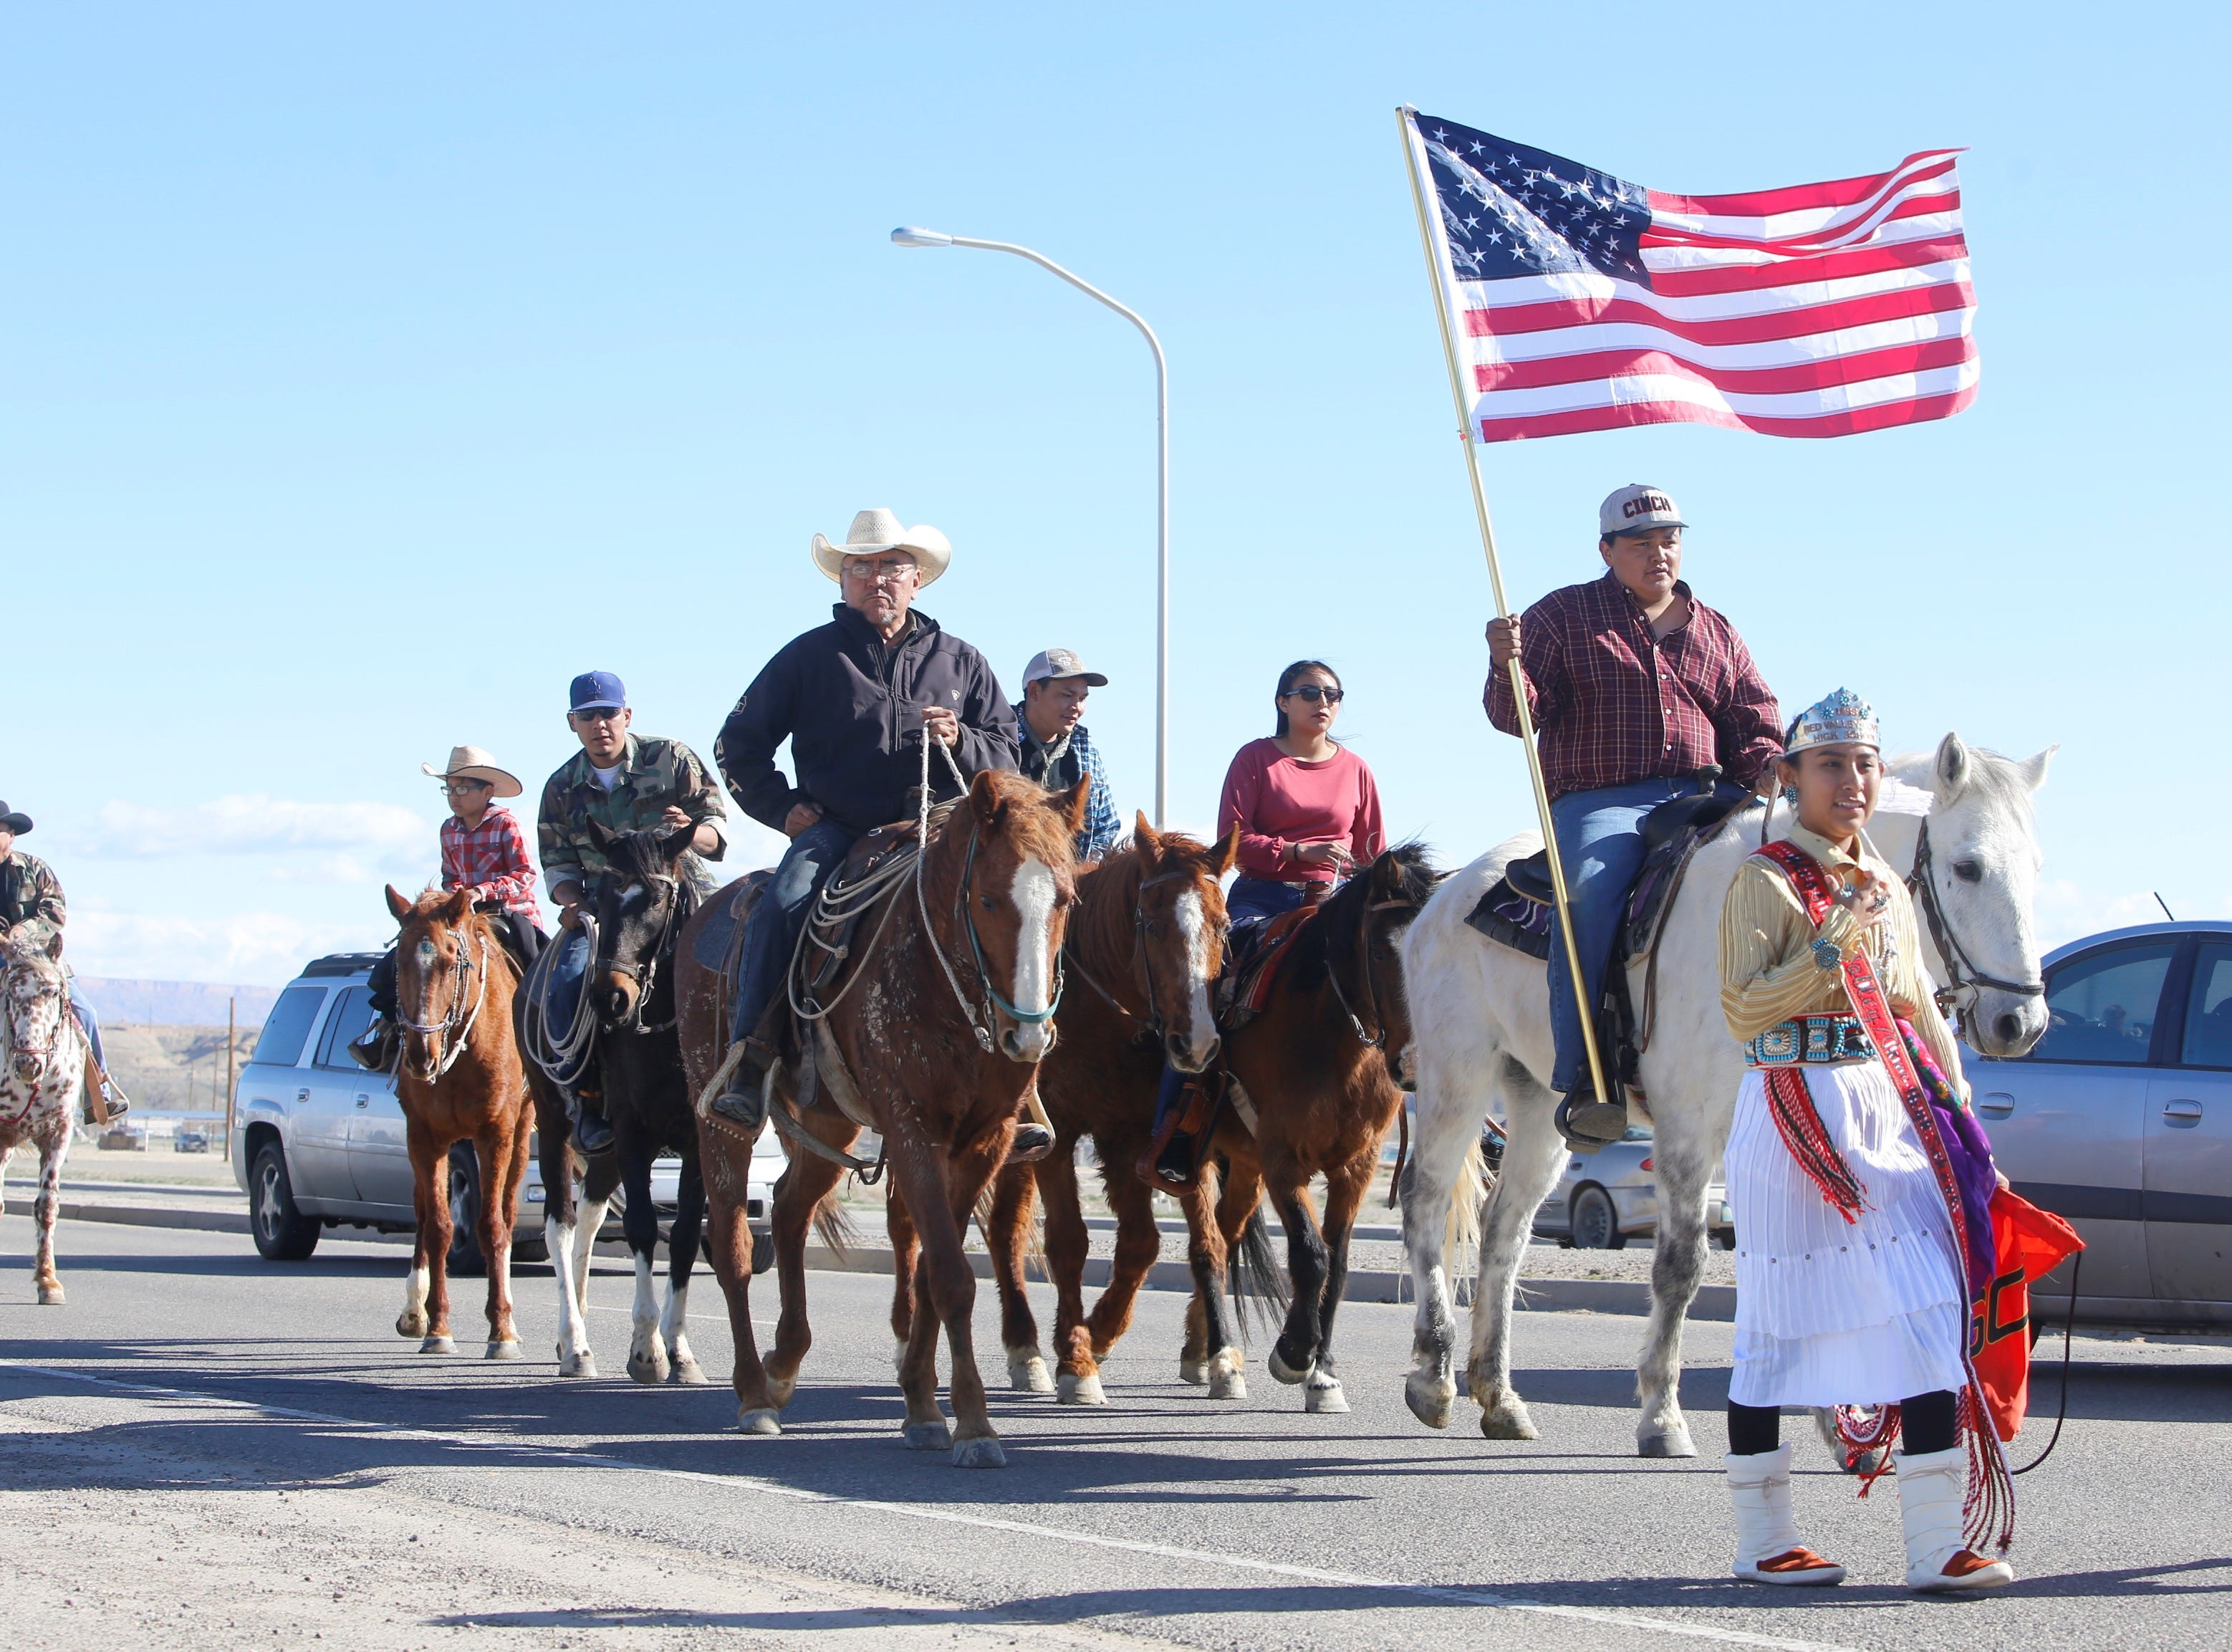 Participants in the Vietnam Veterans Day parade proceed south on U.S. Highway 491 in Shiprock on Friday.